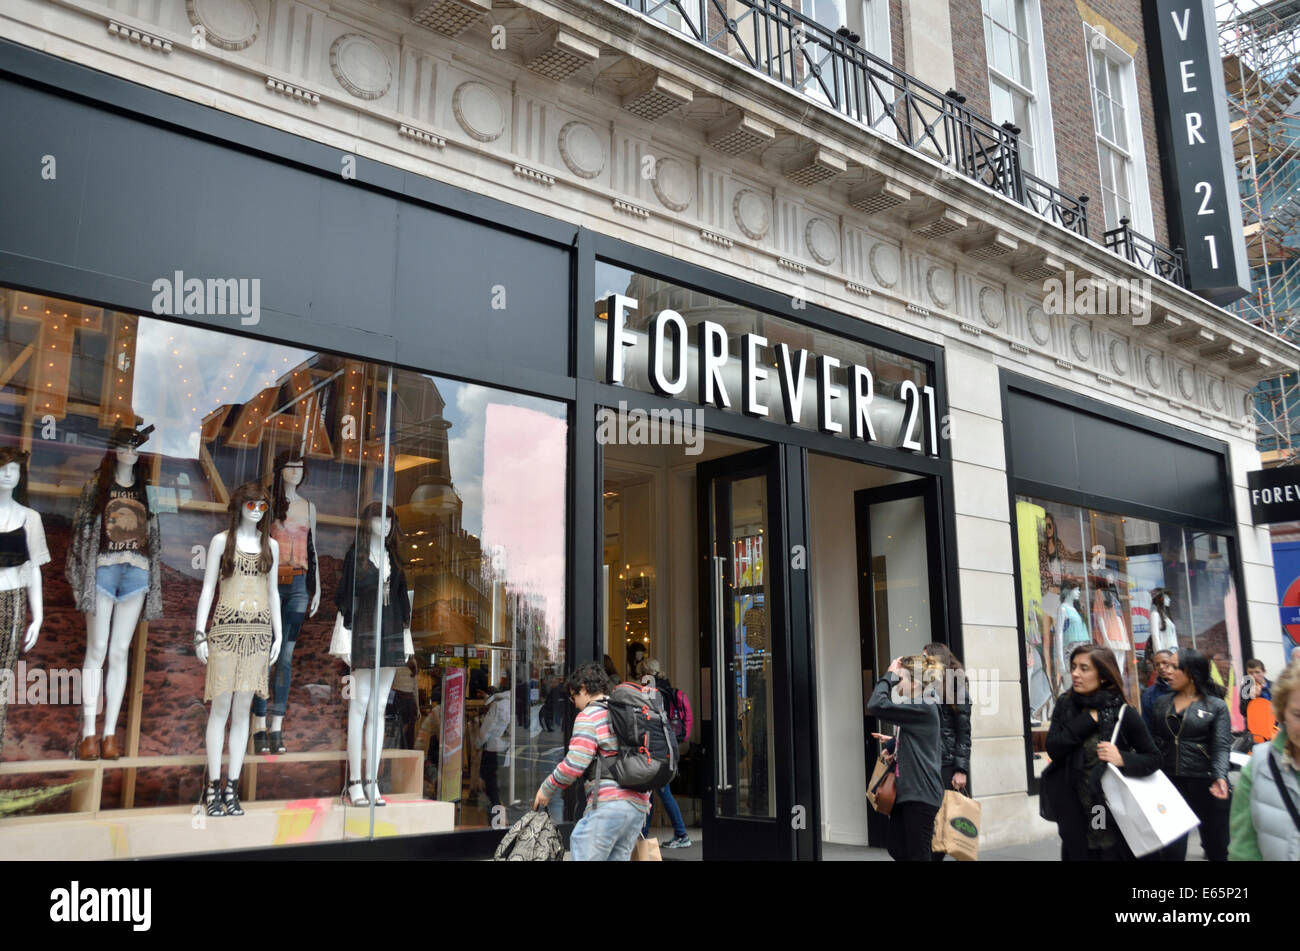 Shop Online Uk. Shop Online Uk Forever 21 Online Shopping Usa Online Shopping For Ladies Off White Sandals At point time, you should also put your garden storage in a spot that it .